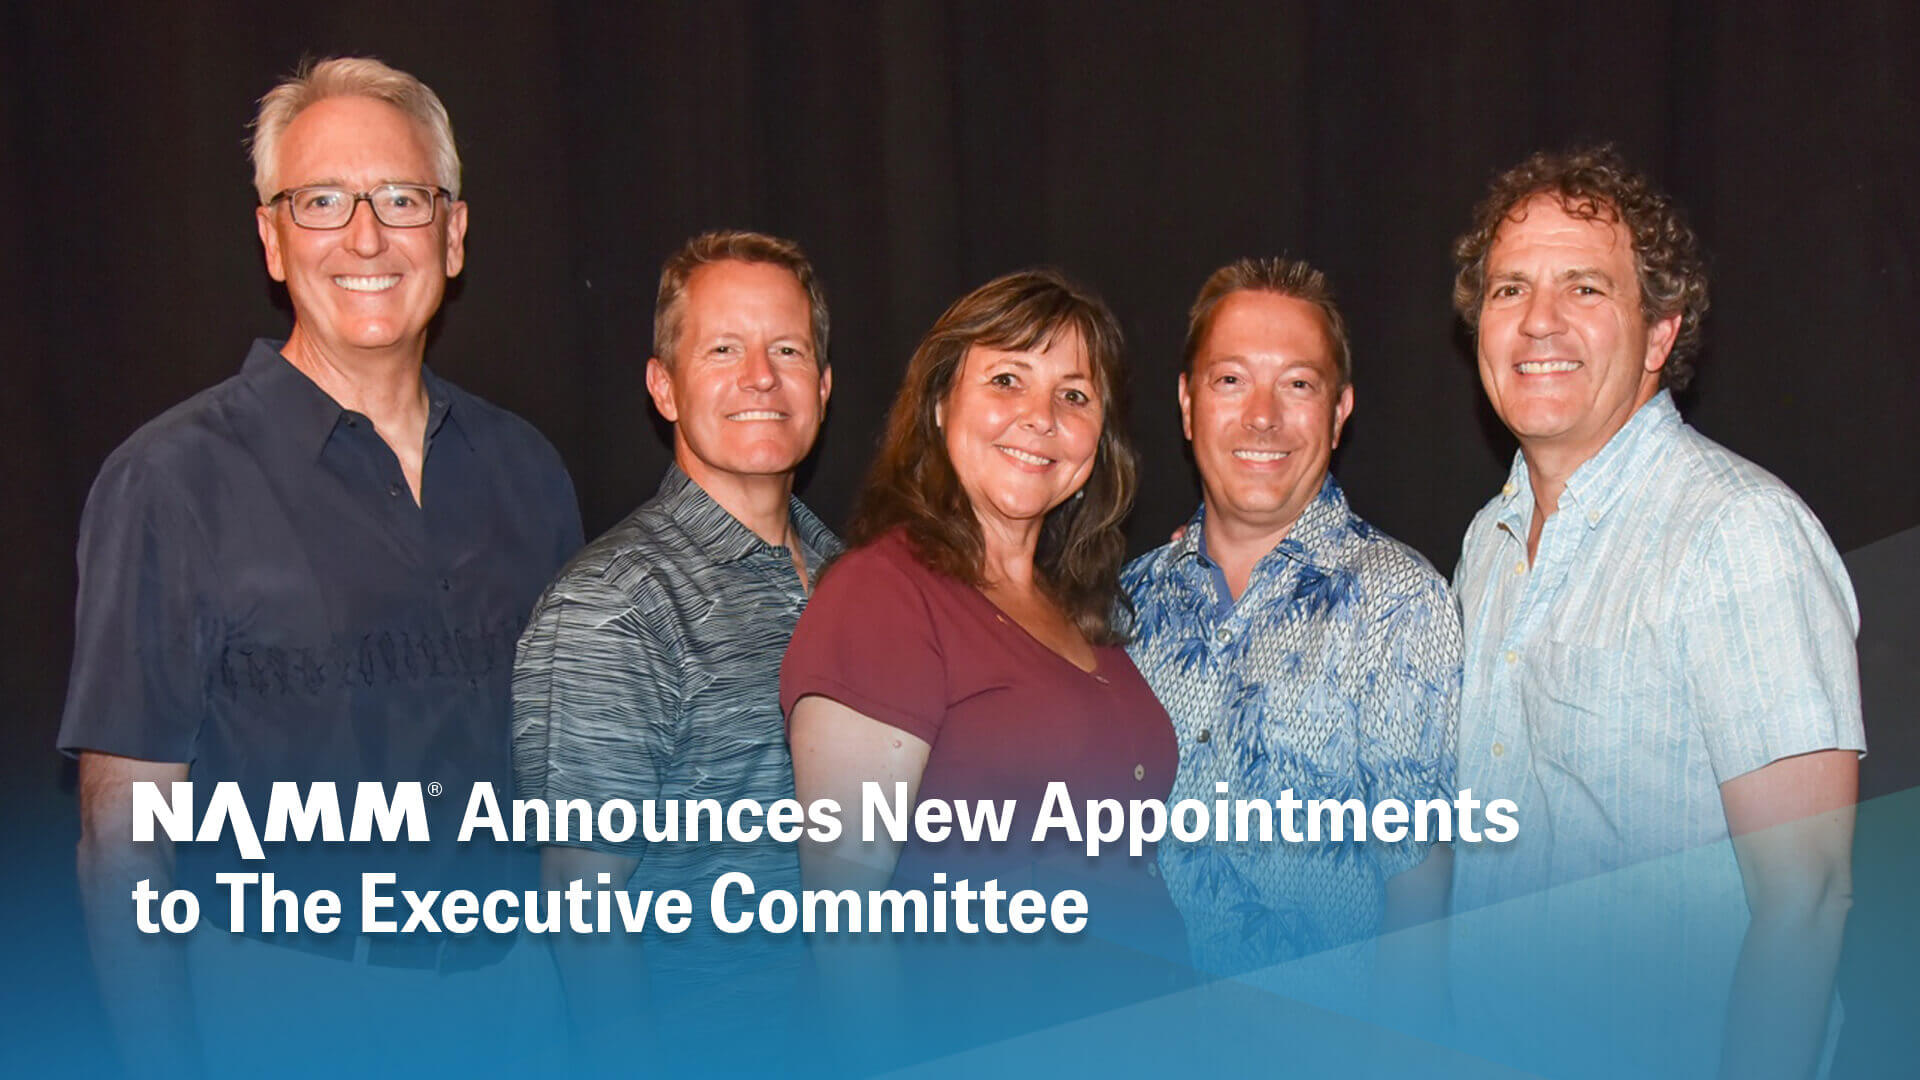 NAMM Announces New Appointments to The Executive Committee